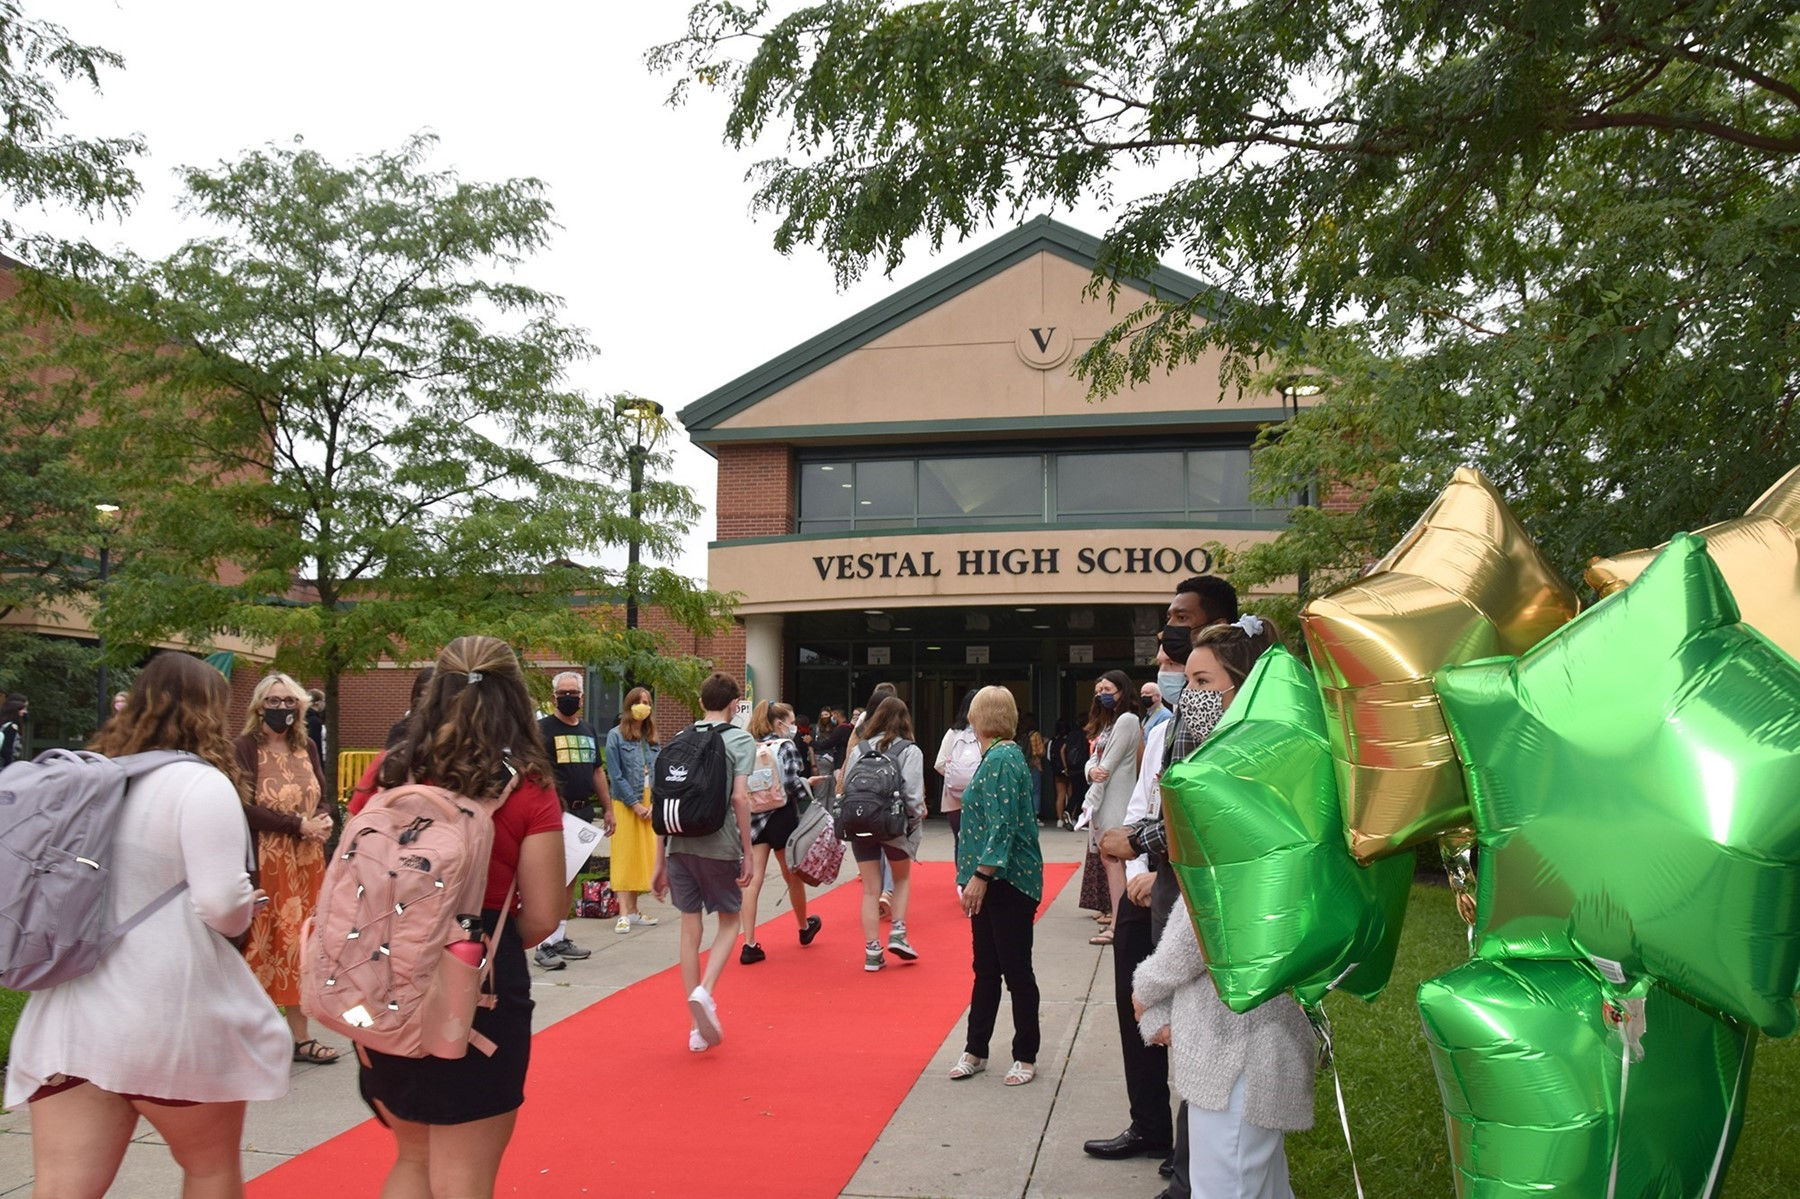 Students travel up a red carpet flanked by green and gold balloons and waving teachers as they arrive for the first day of school on September 9, 2021.